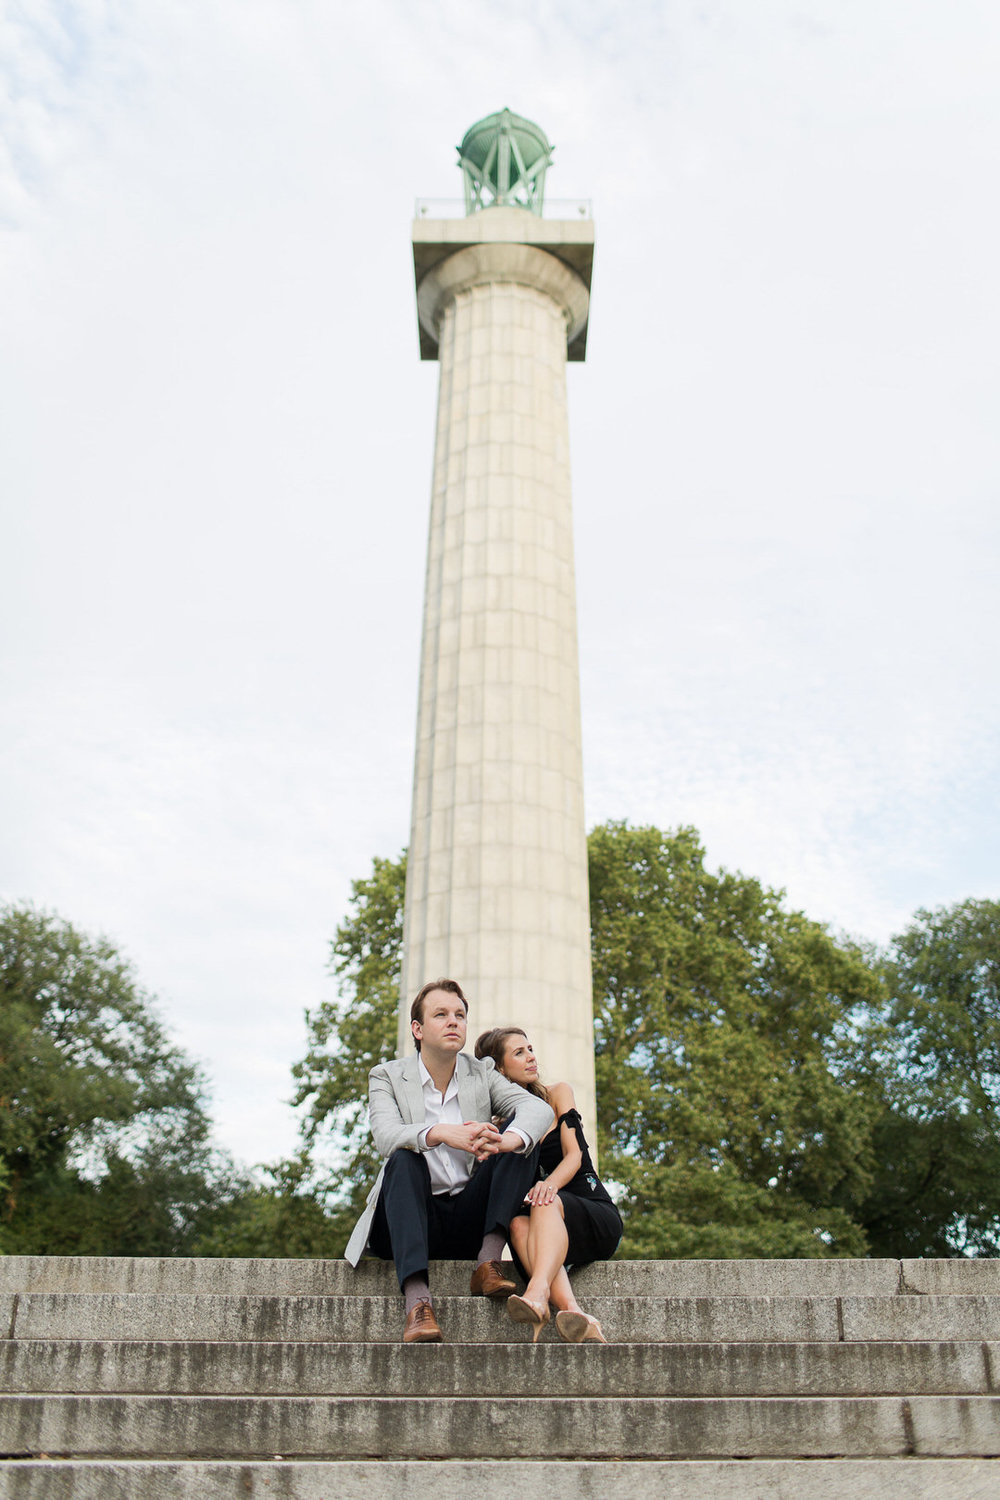 Melissa Kruse Photography - Meghan & Pete Engagement Photos-166.jpg